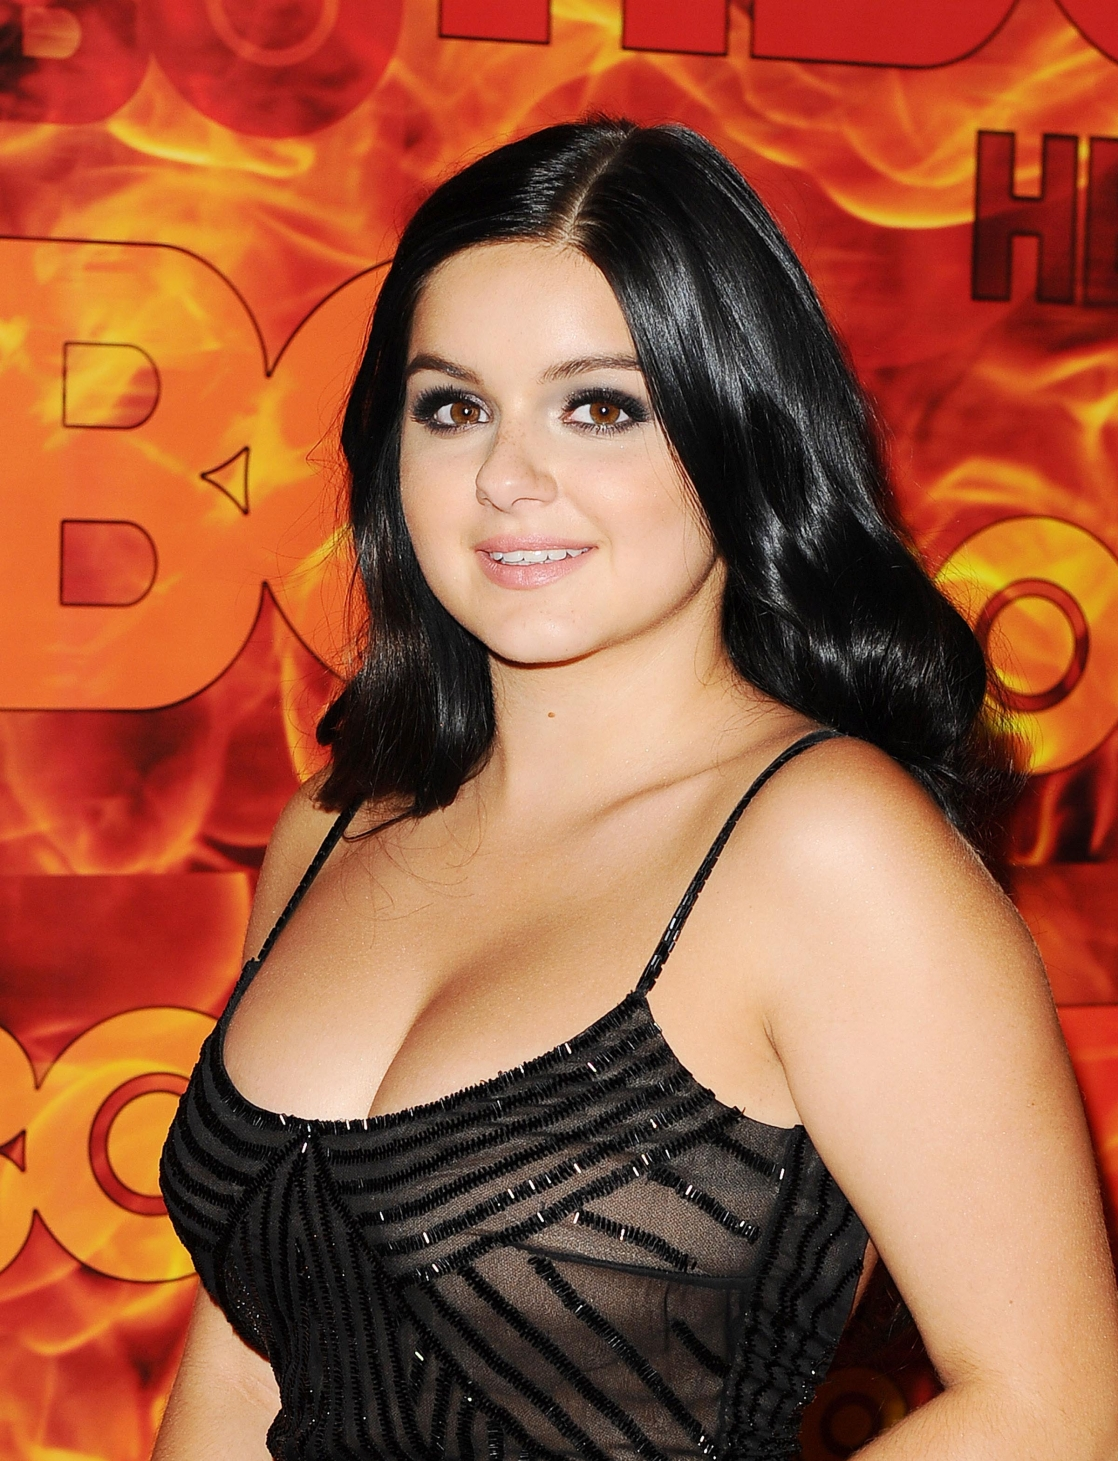 Excellent idea. ariel winter fake nude naked final, sorry